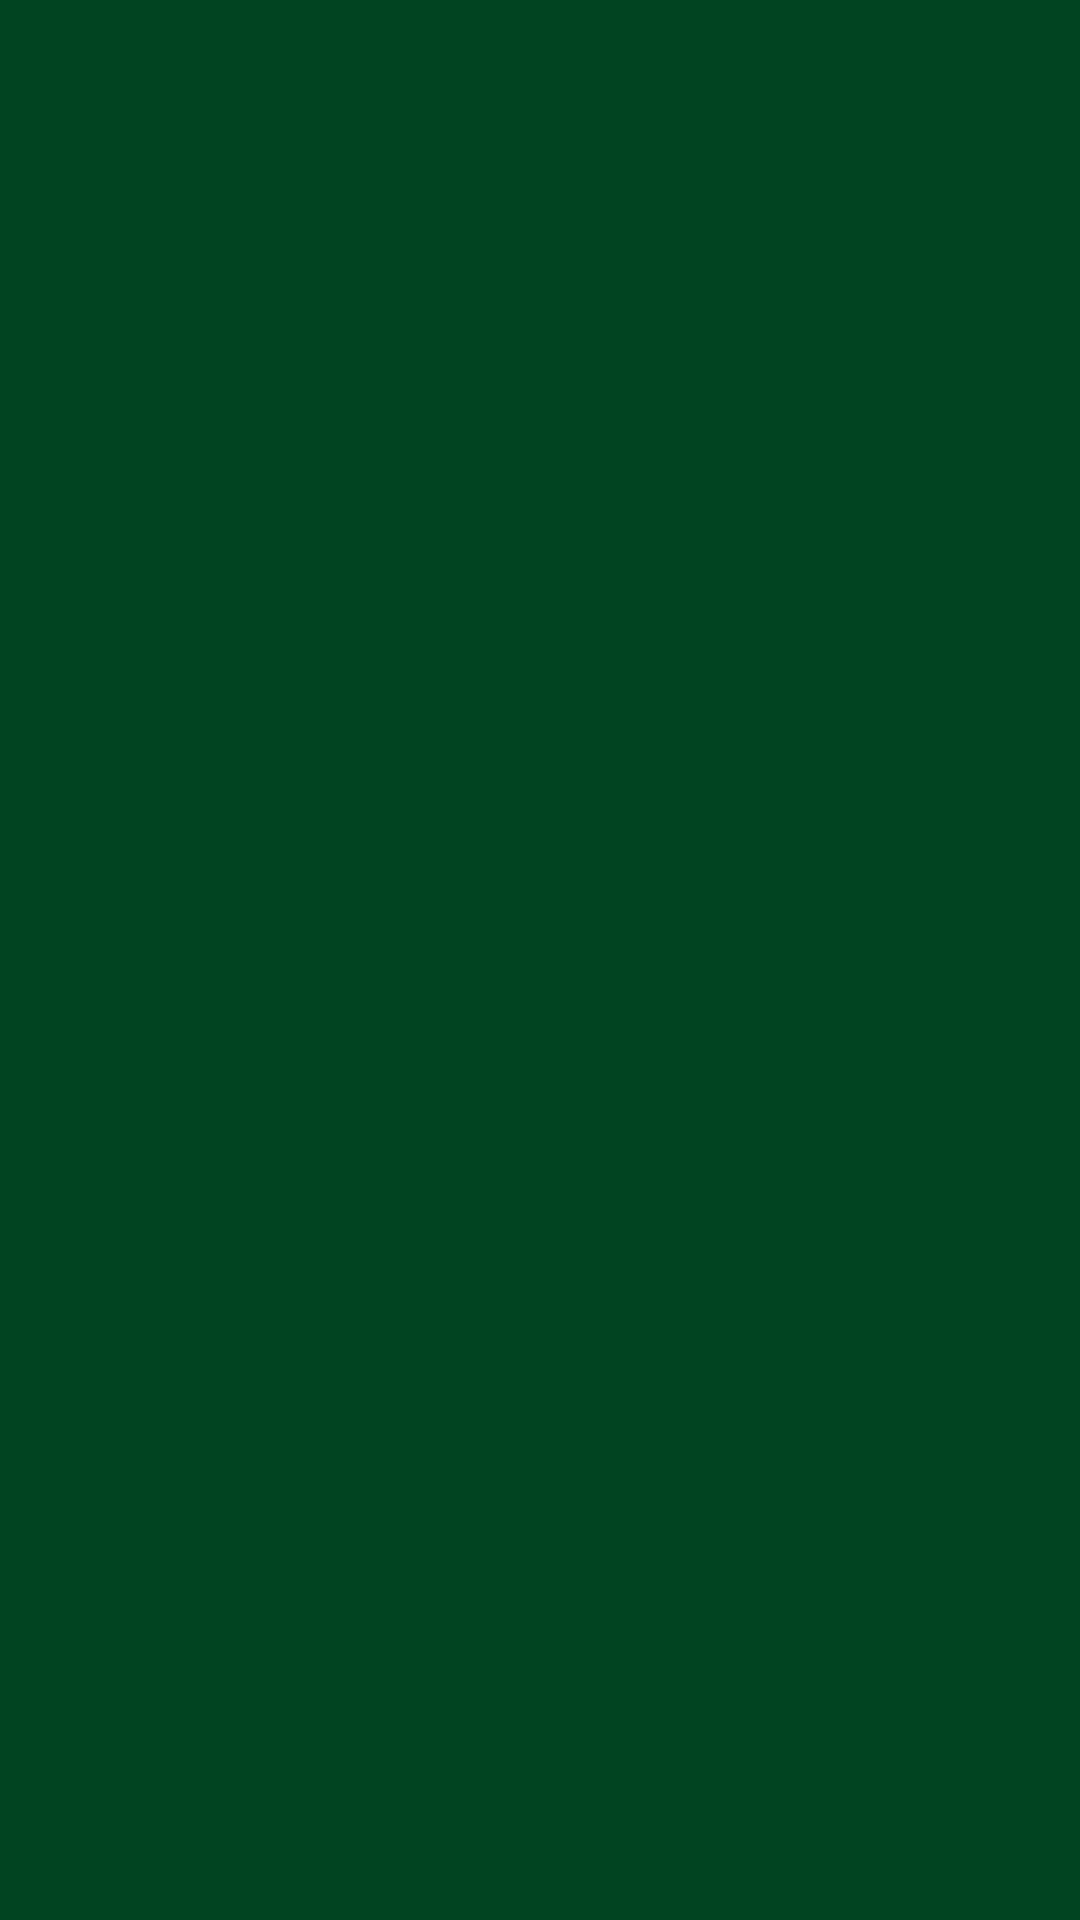 1080x1920 Forest Green Traditional Solid Color Background